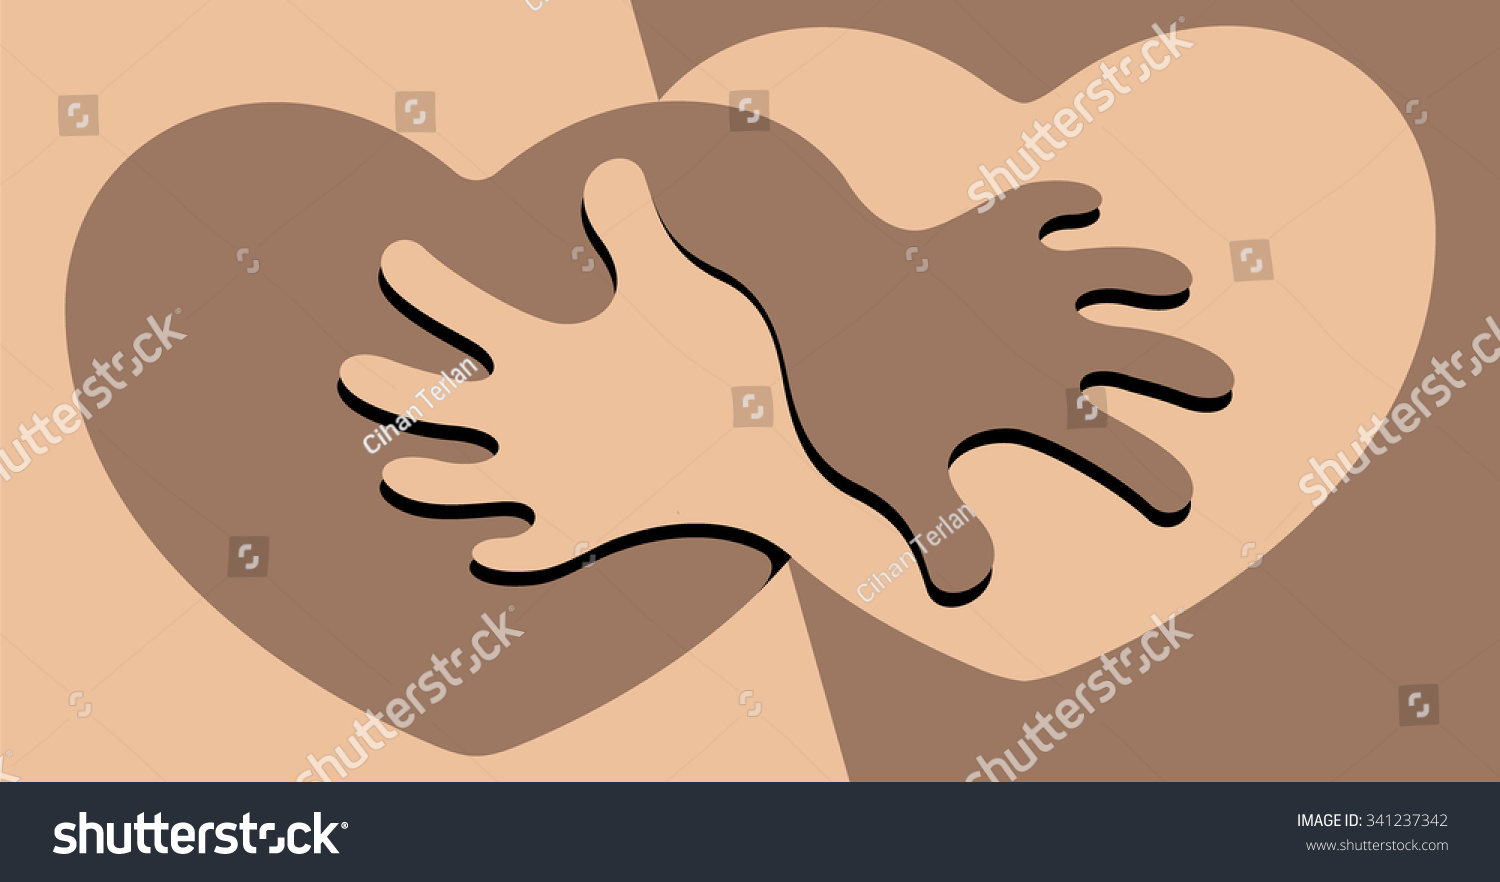 Anti racist abstract symbol anti racism stock vector 341237342 anti racist an abstract symbol for anti racism featuring two hearts holding each other biocorpaavc Images